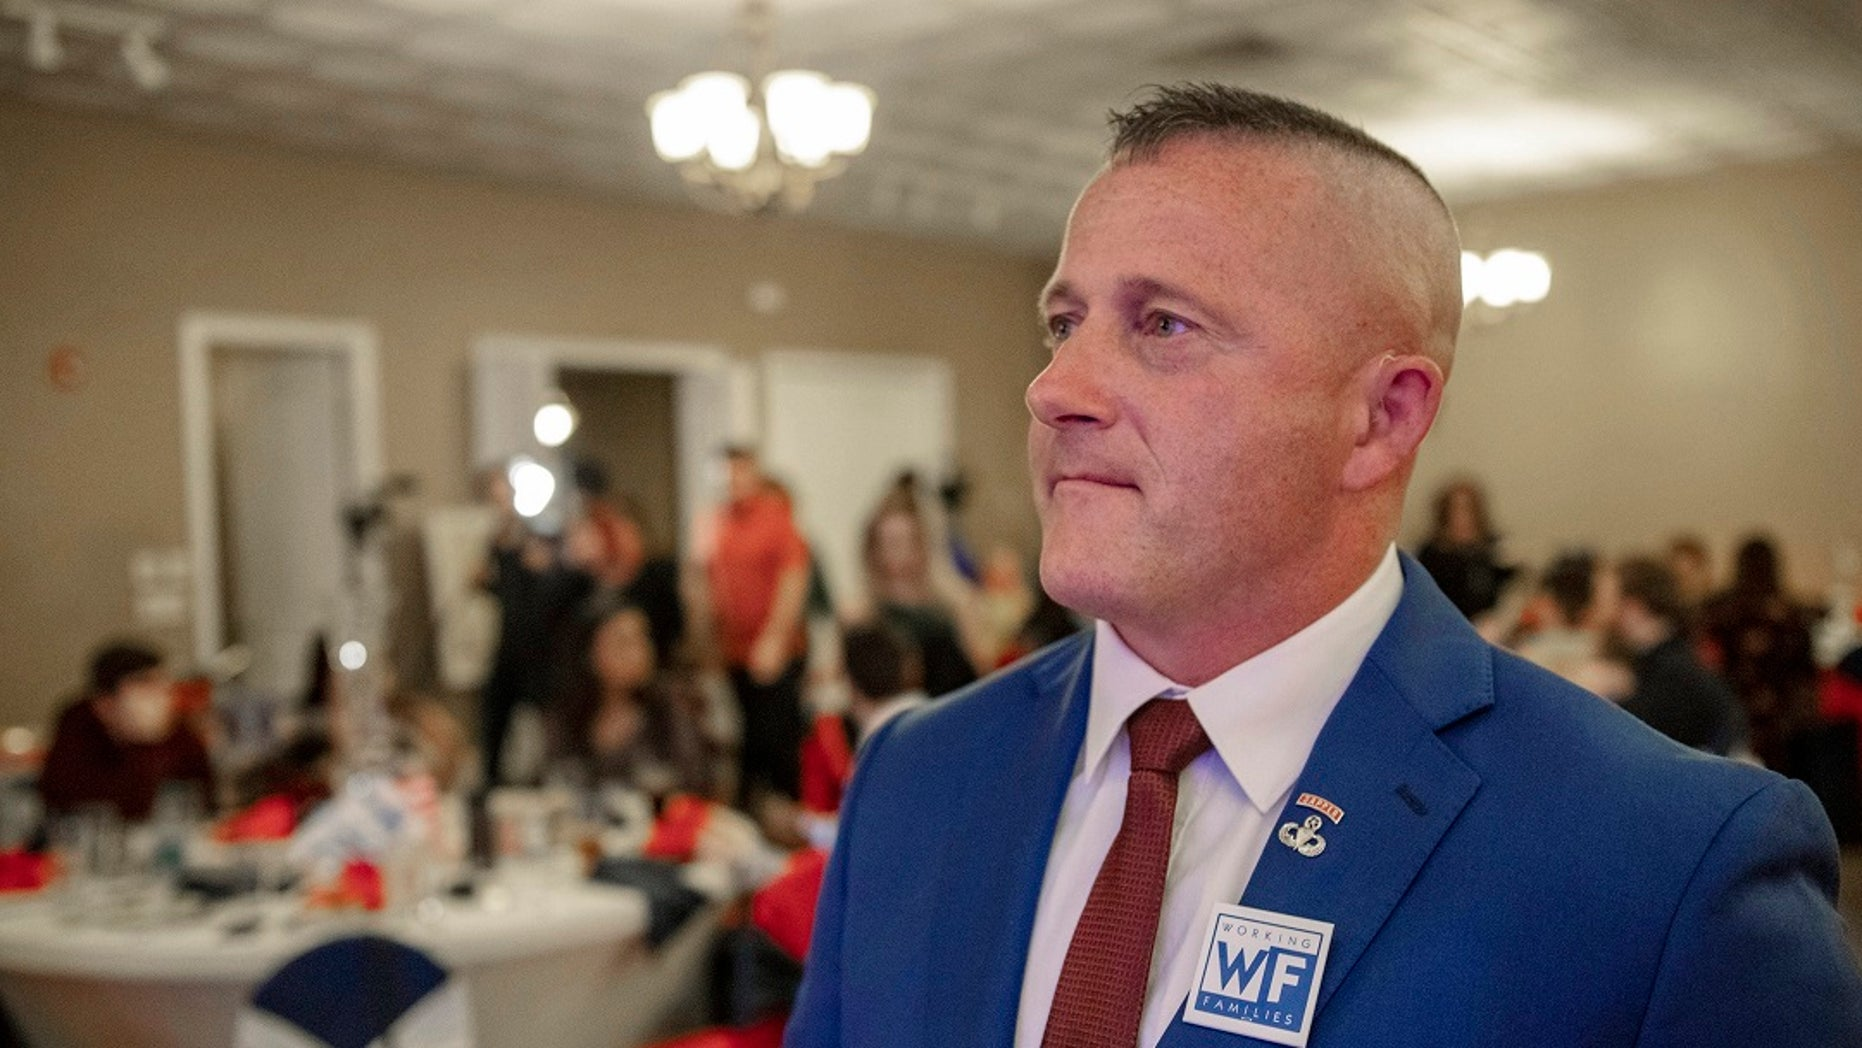 Richard Ojeda, a Democratic candidate for West Virginia's 3rd Congressional District, watches election results during his campaign's watch party at Special Occasions in Yuma, W.Va., Nov. 6, 2018.(Associated Press)